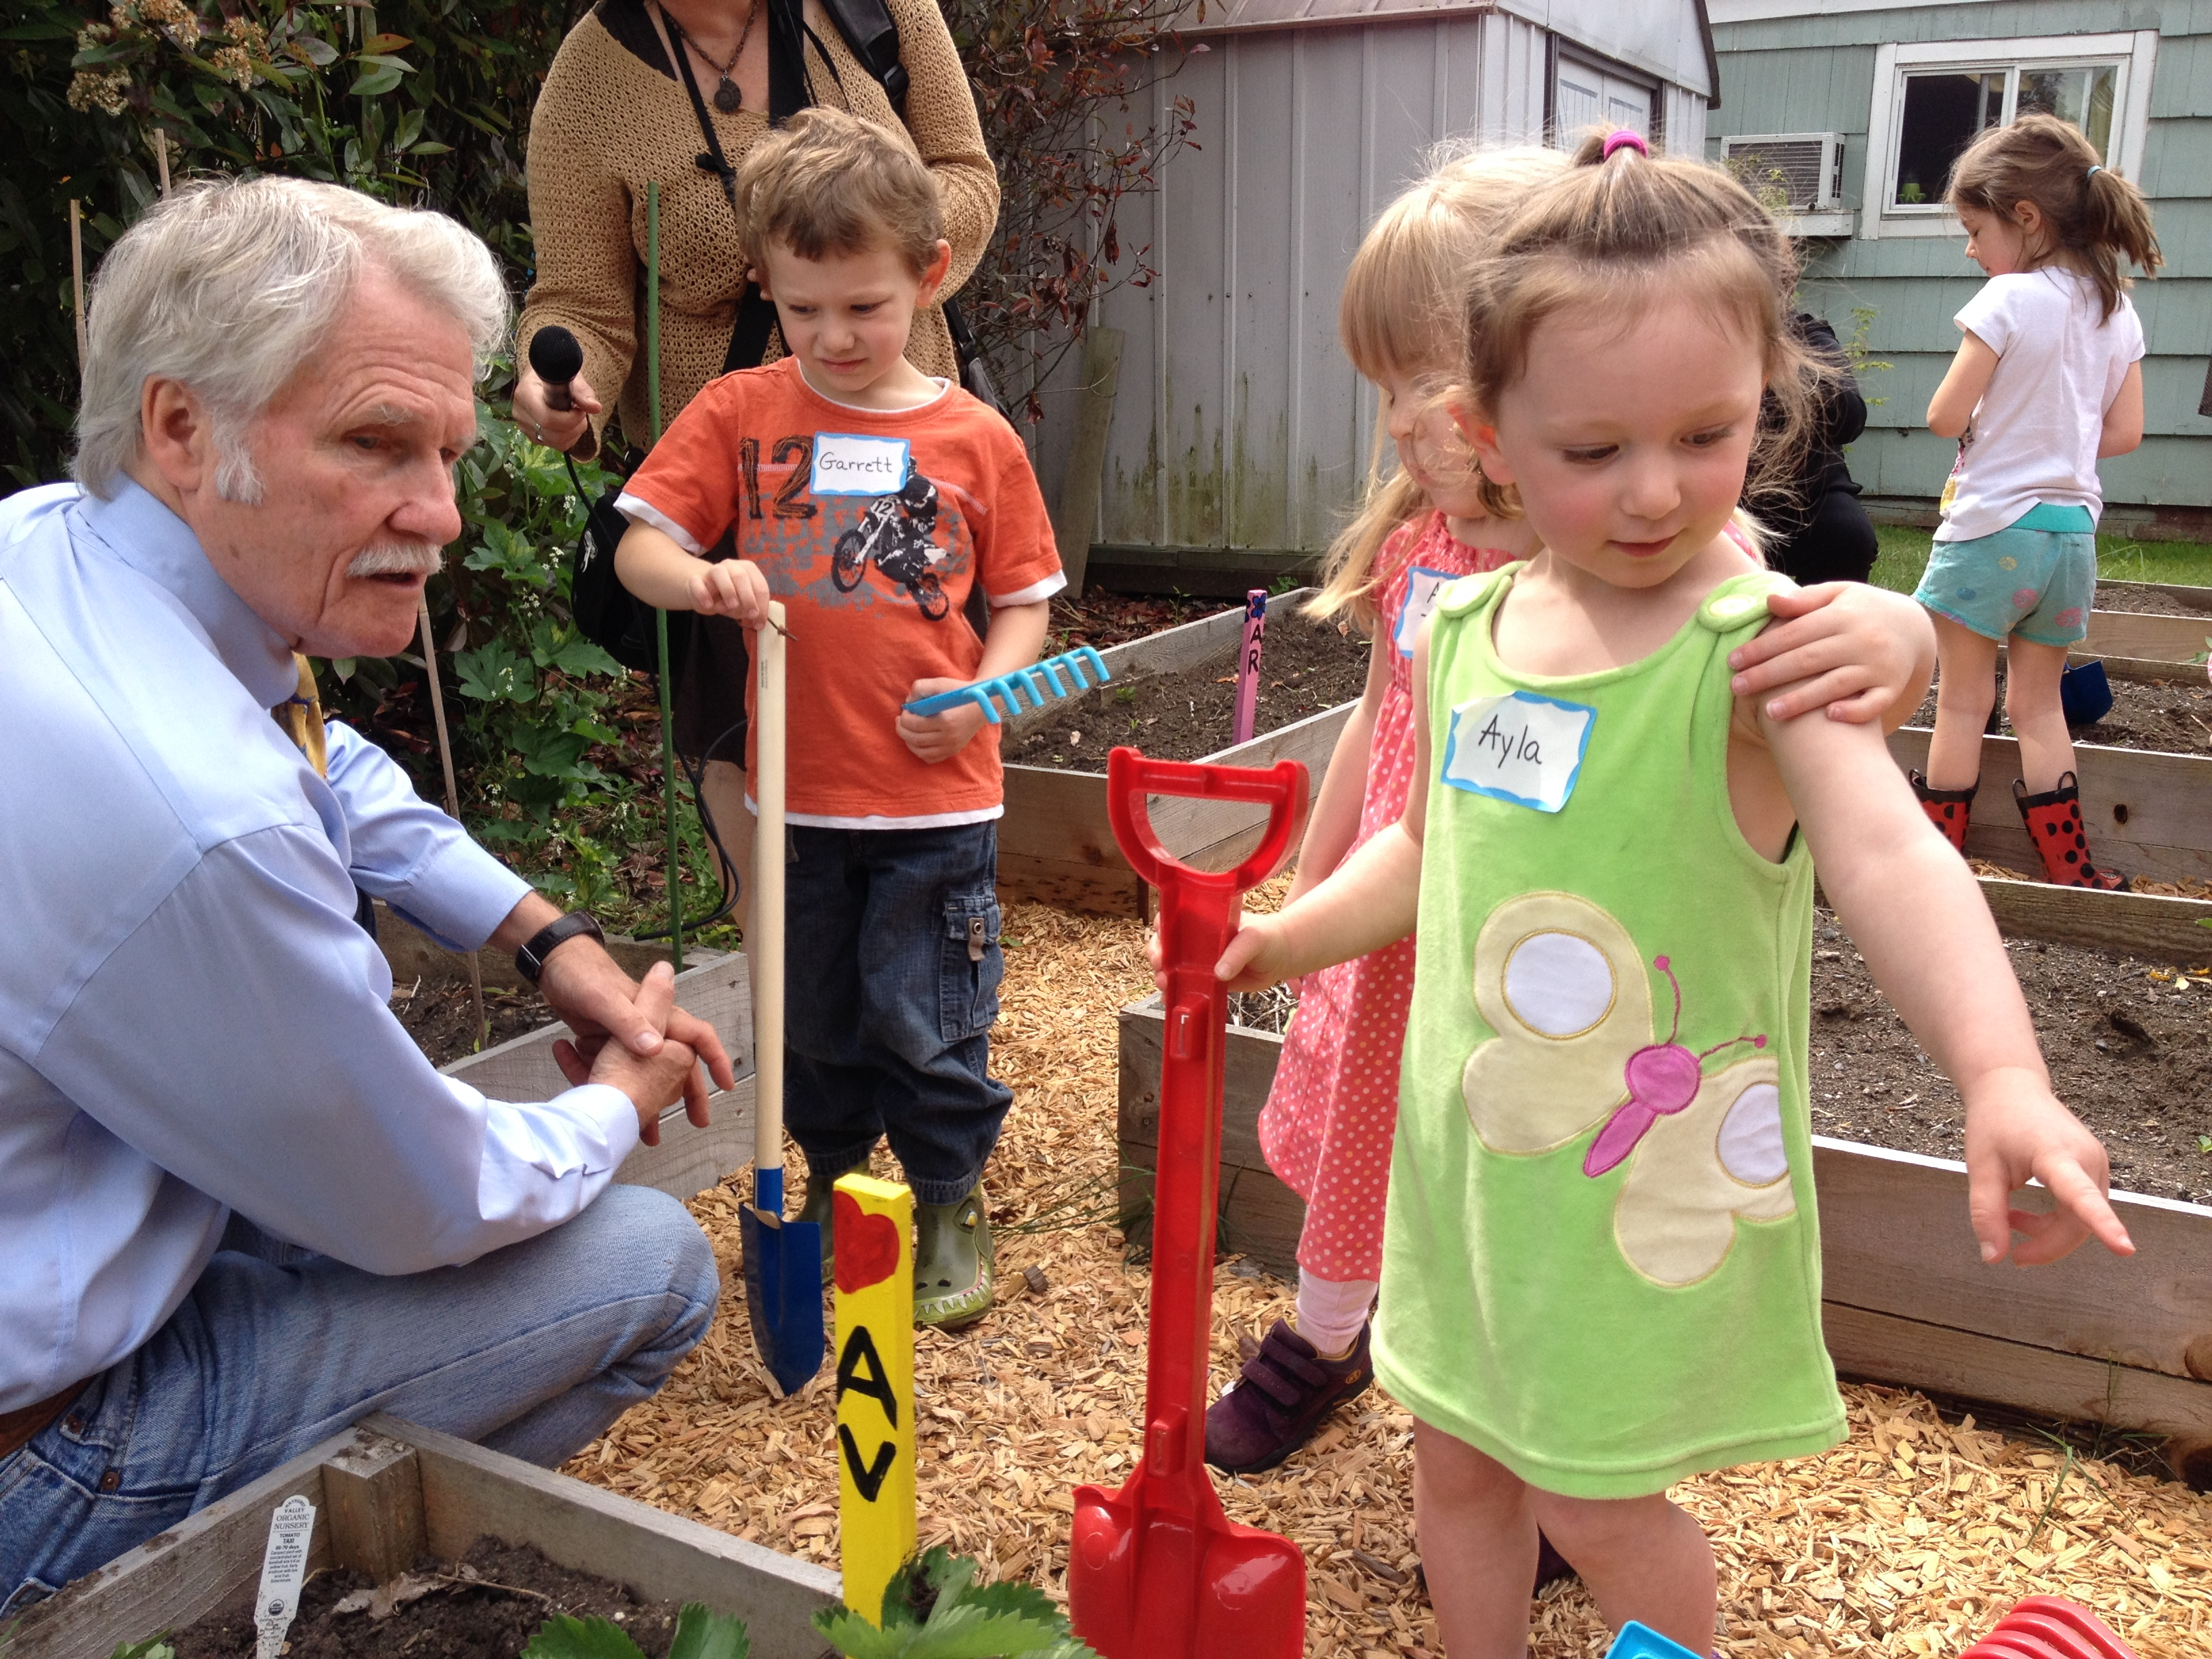 Governor Kitzhaber Visits Quality-Rated Preschool to Highlight Statewide Efforts to Improve Early Learning Programs